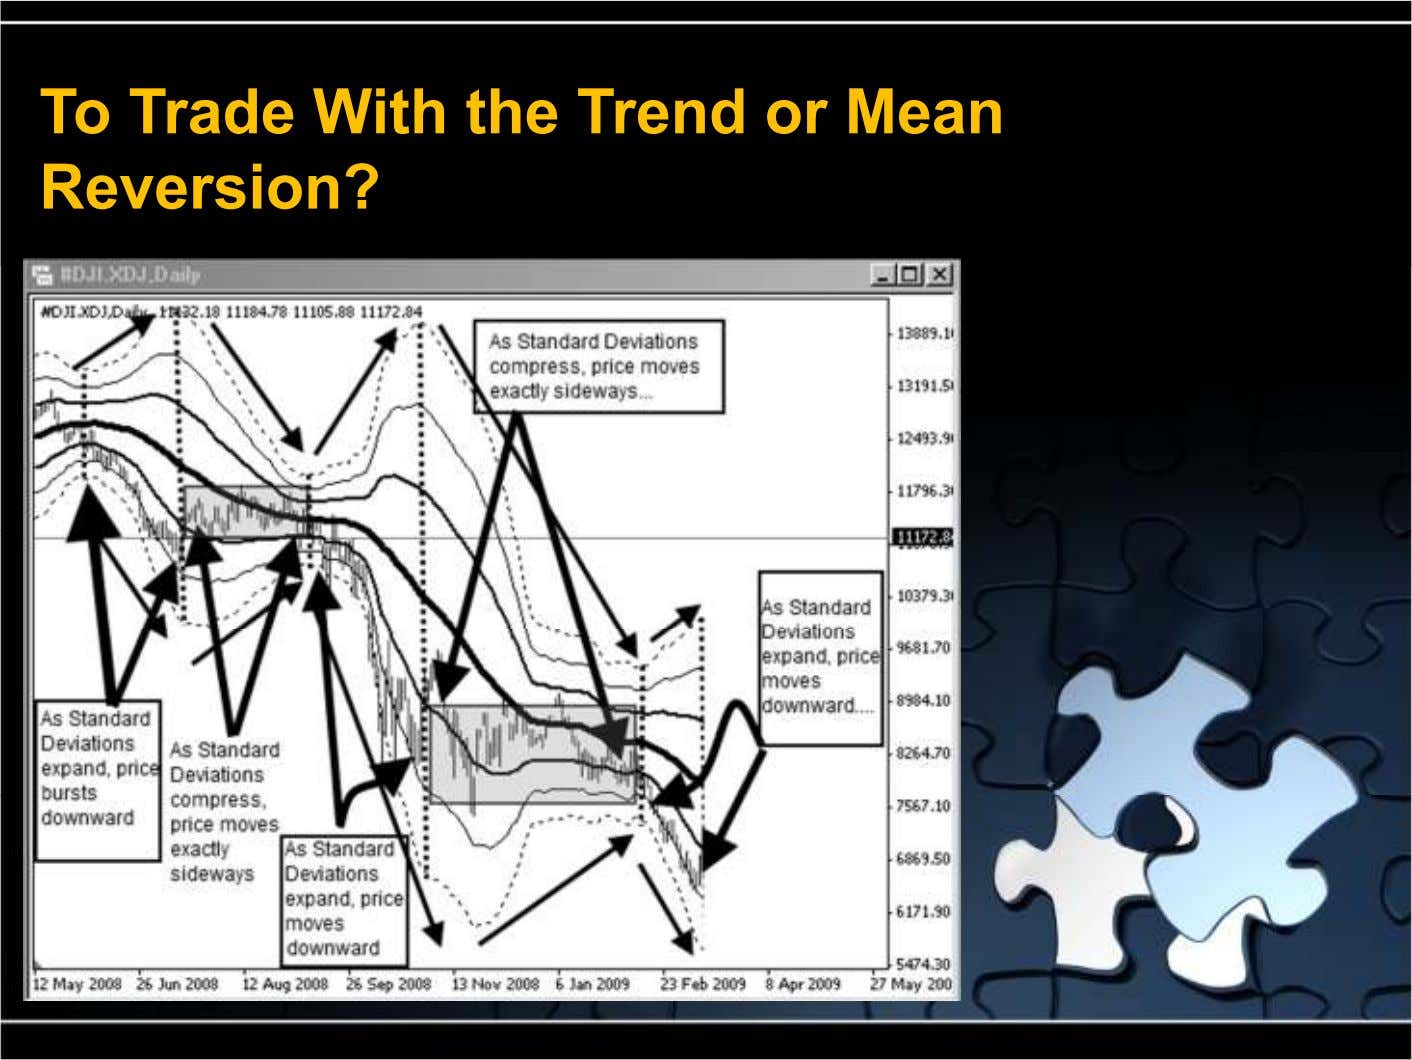 To Trade With the Trend or Mean Reversion?